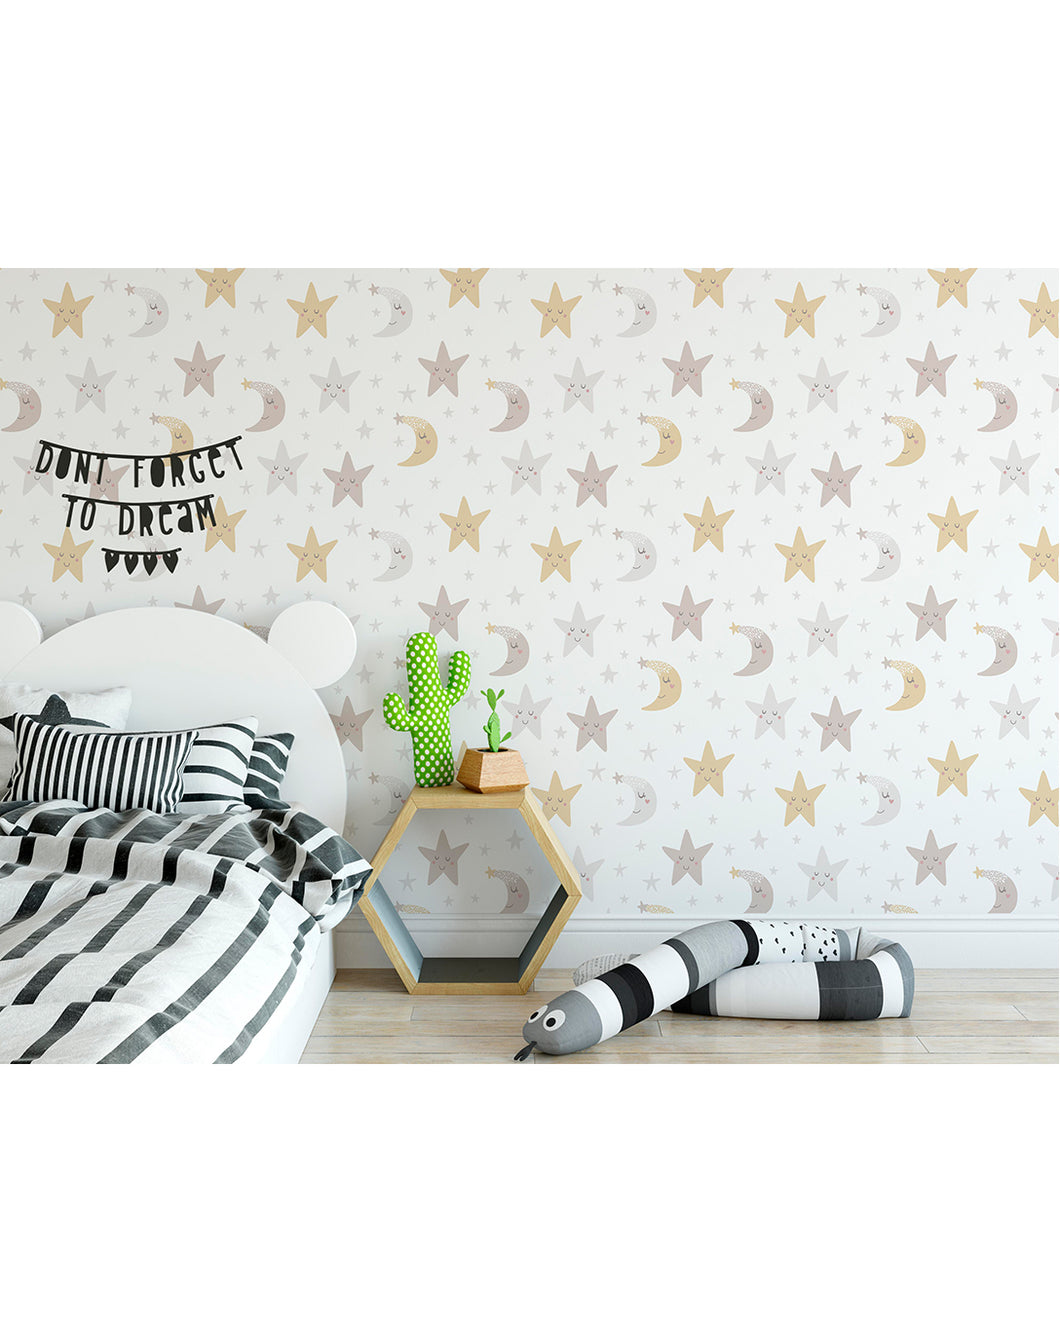 Self Adhesive Night Sky Removable Wallpaper For Kids Room